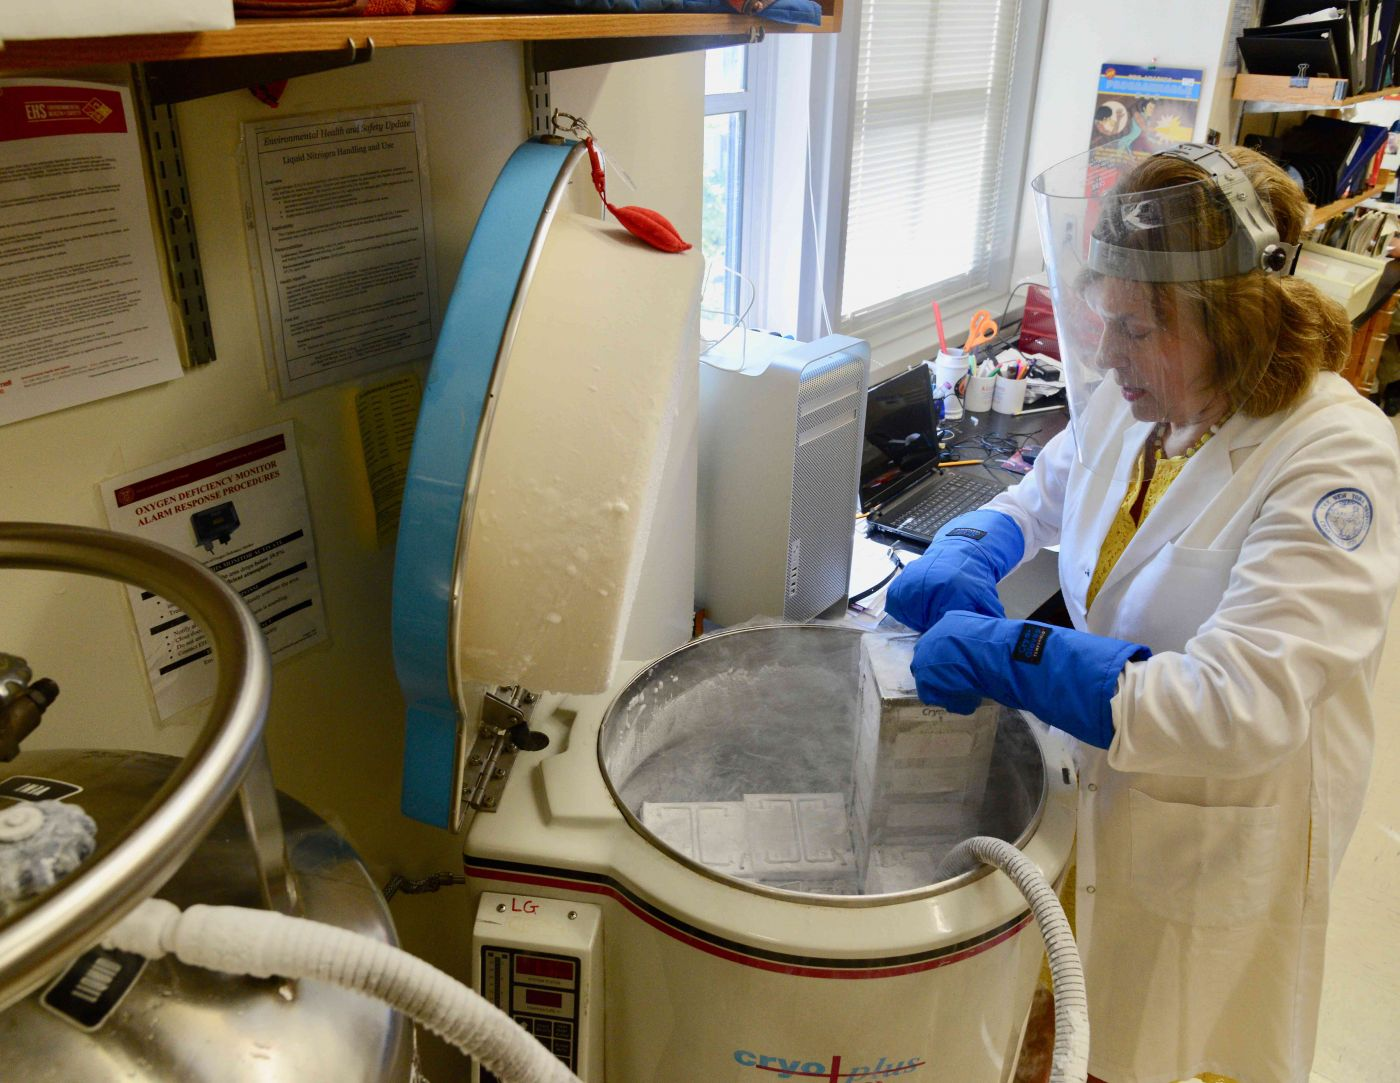 Researcher working in the lab.